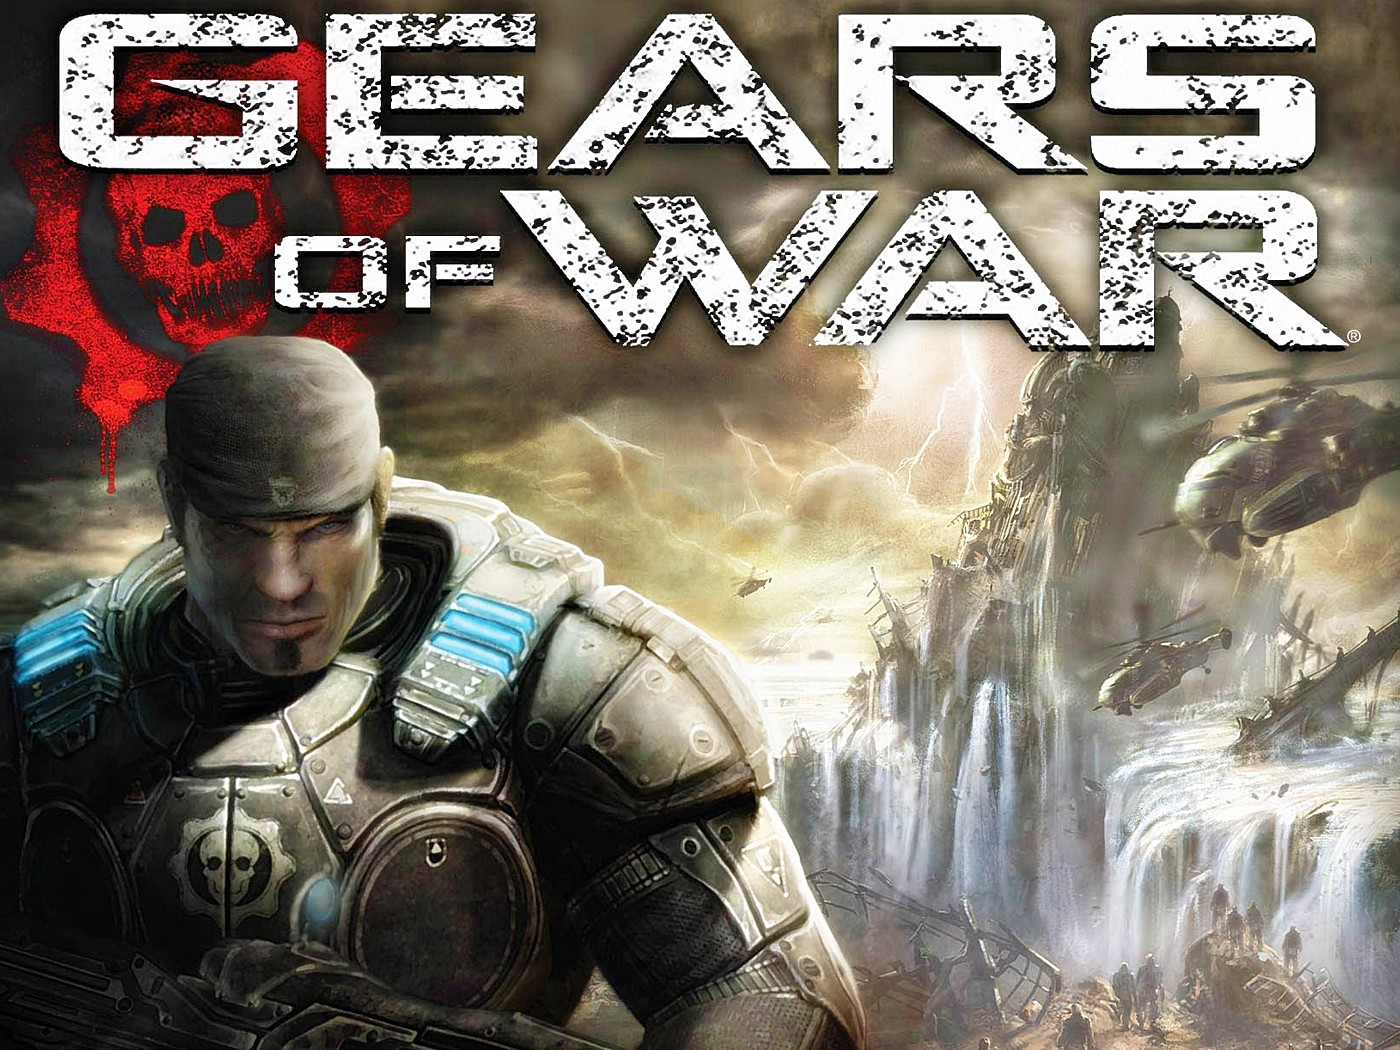 http://3.bp.blogspot.com/-HfNbNuLLgbY/UDgZZKiELlI/AAAAAAAAHzM/hTI-Q_aY-Z8/s1600/gears-of-war-dvd-cover-HD_wallpapers.jpg